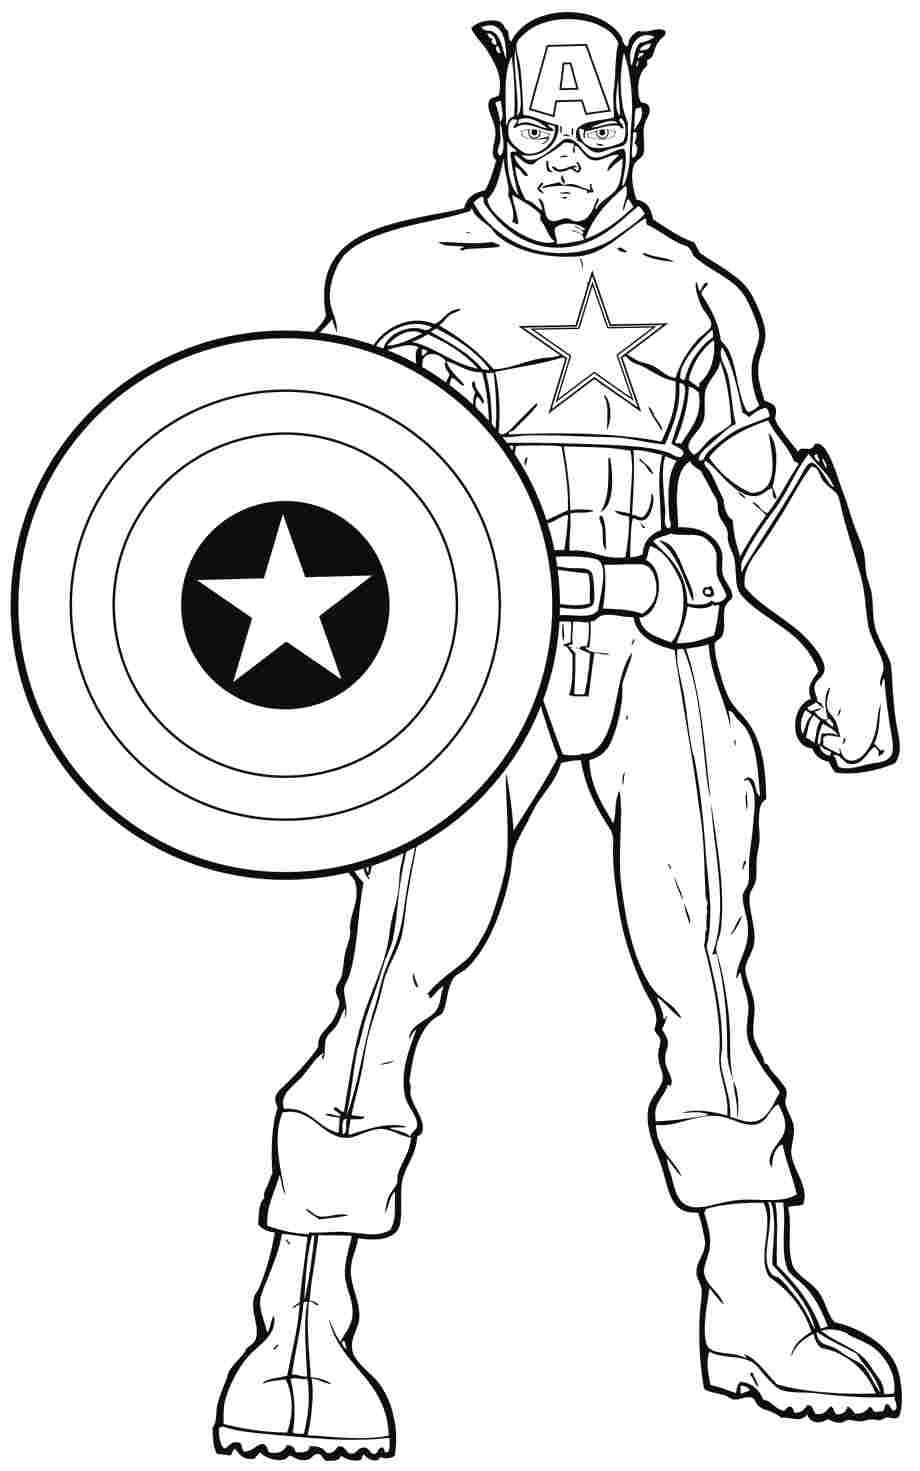 Coloring Pages Flash Superhero Coloring Home Superhero Coloring Pages Superhero Coloring Avengers Coloring Pages